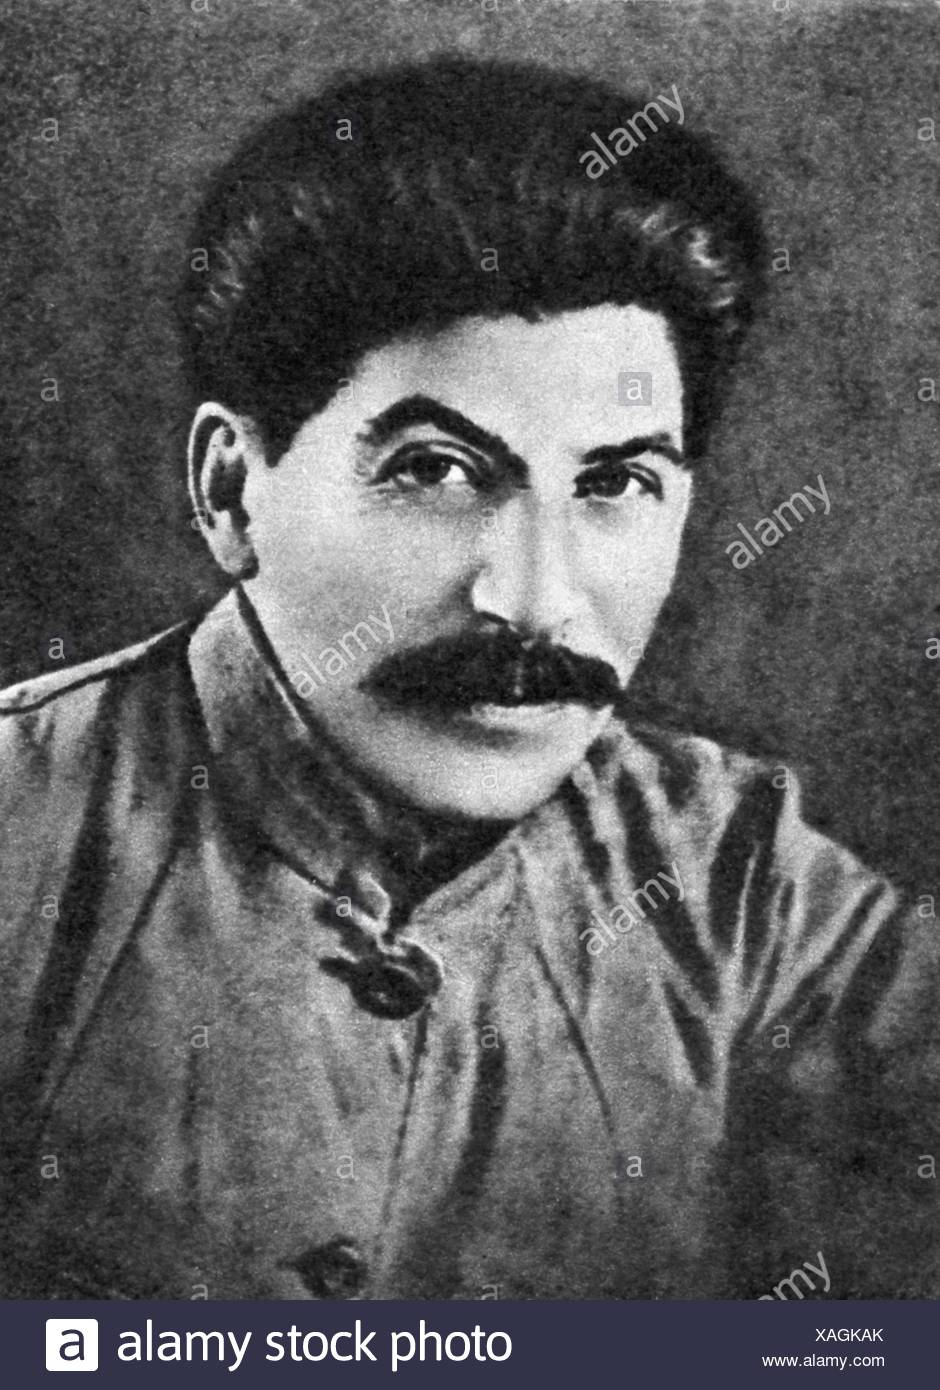 Stalin (Iosif Vissarionovich Jughashvili), 18.12.1878 - 5.3.1953, Soviet politician (CPSU), portrait, 1922, , Additional-Rights-Clearances-NA - Stock Image